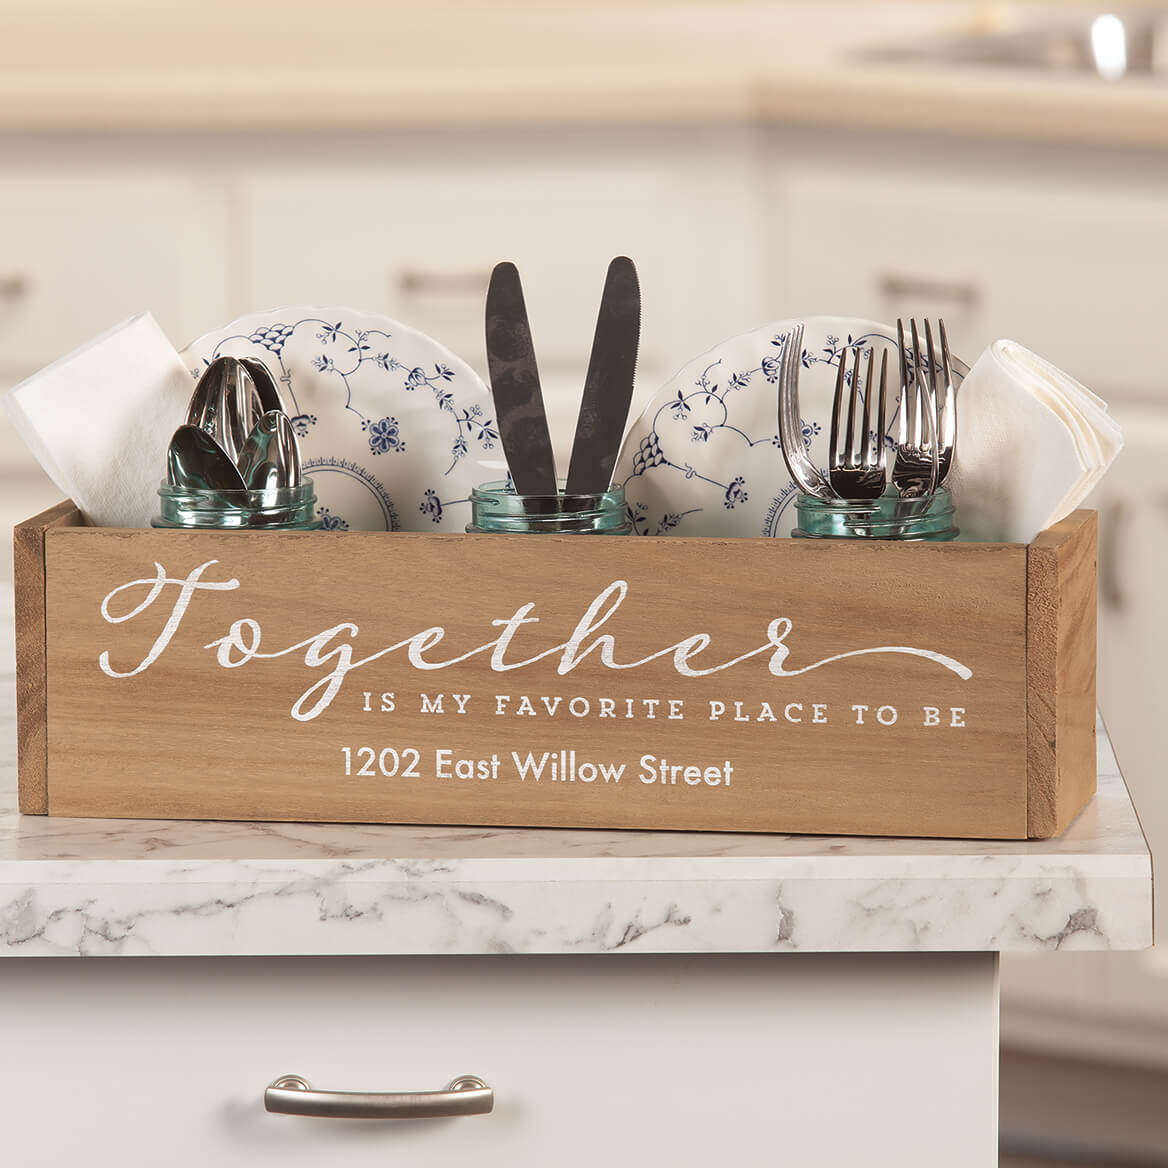 Pers Wooden Planter Box, Together is My Favorite Place to Be-369262